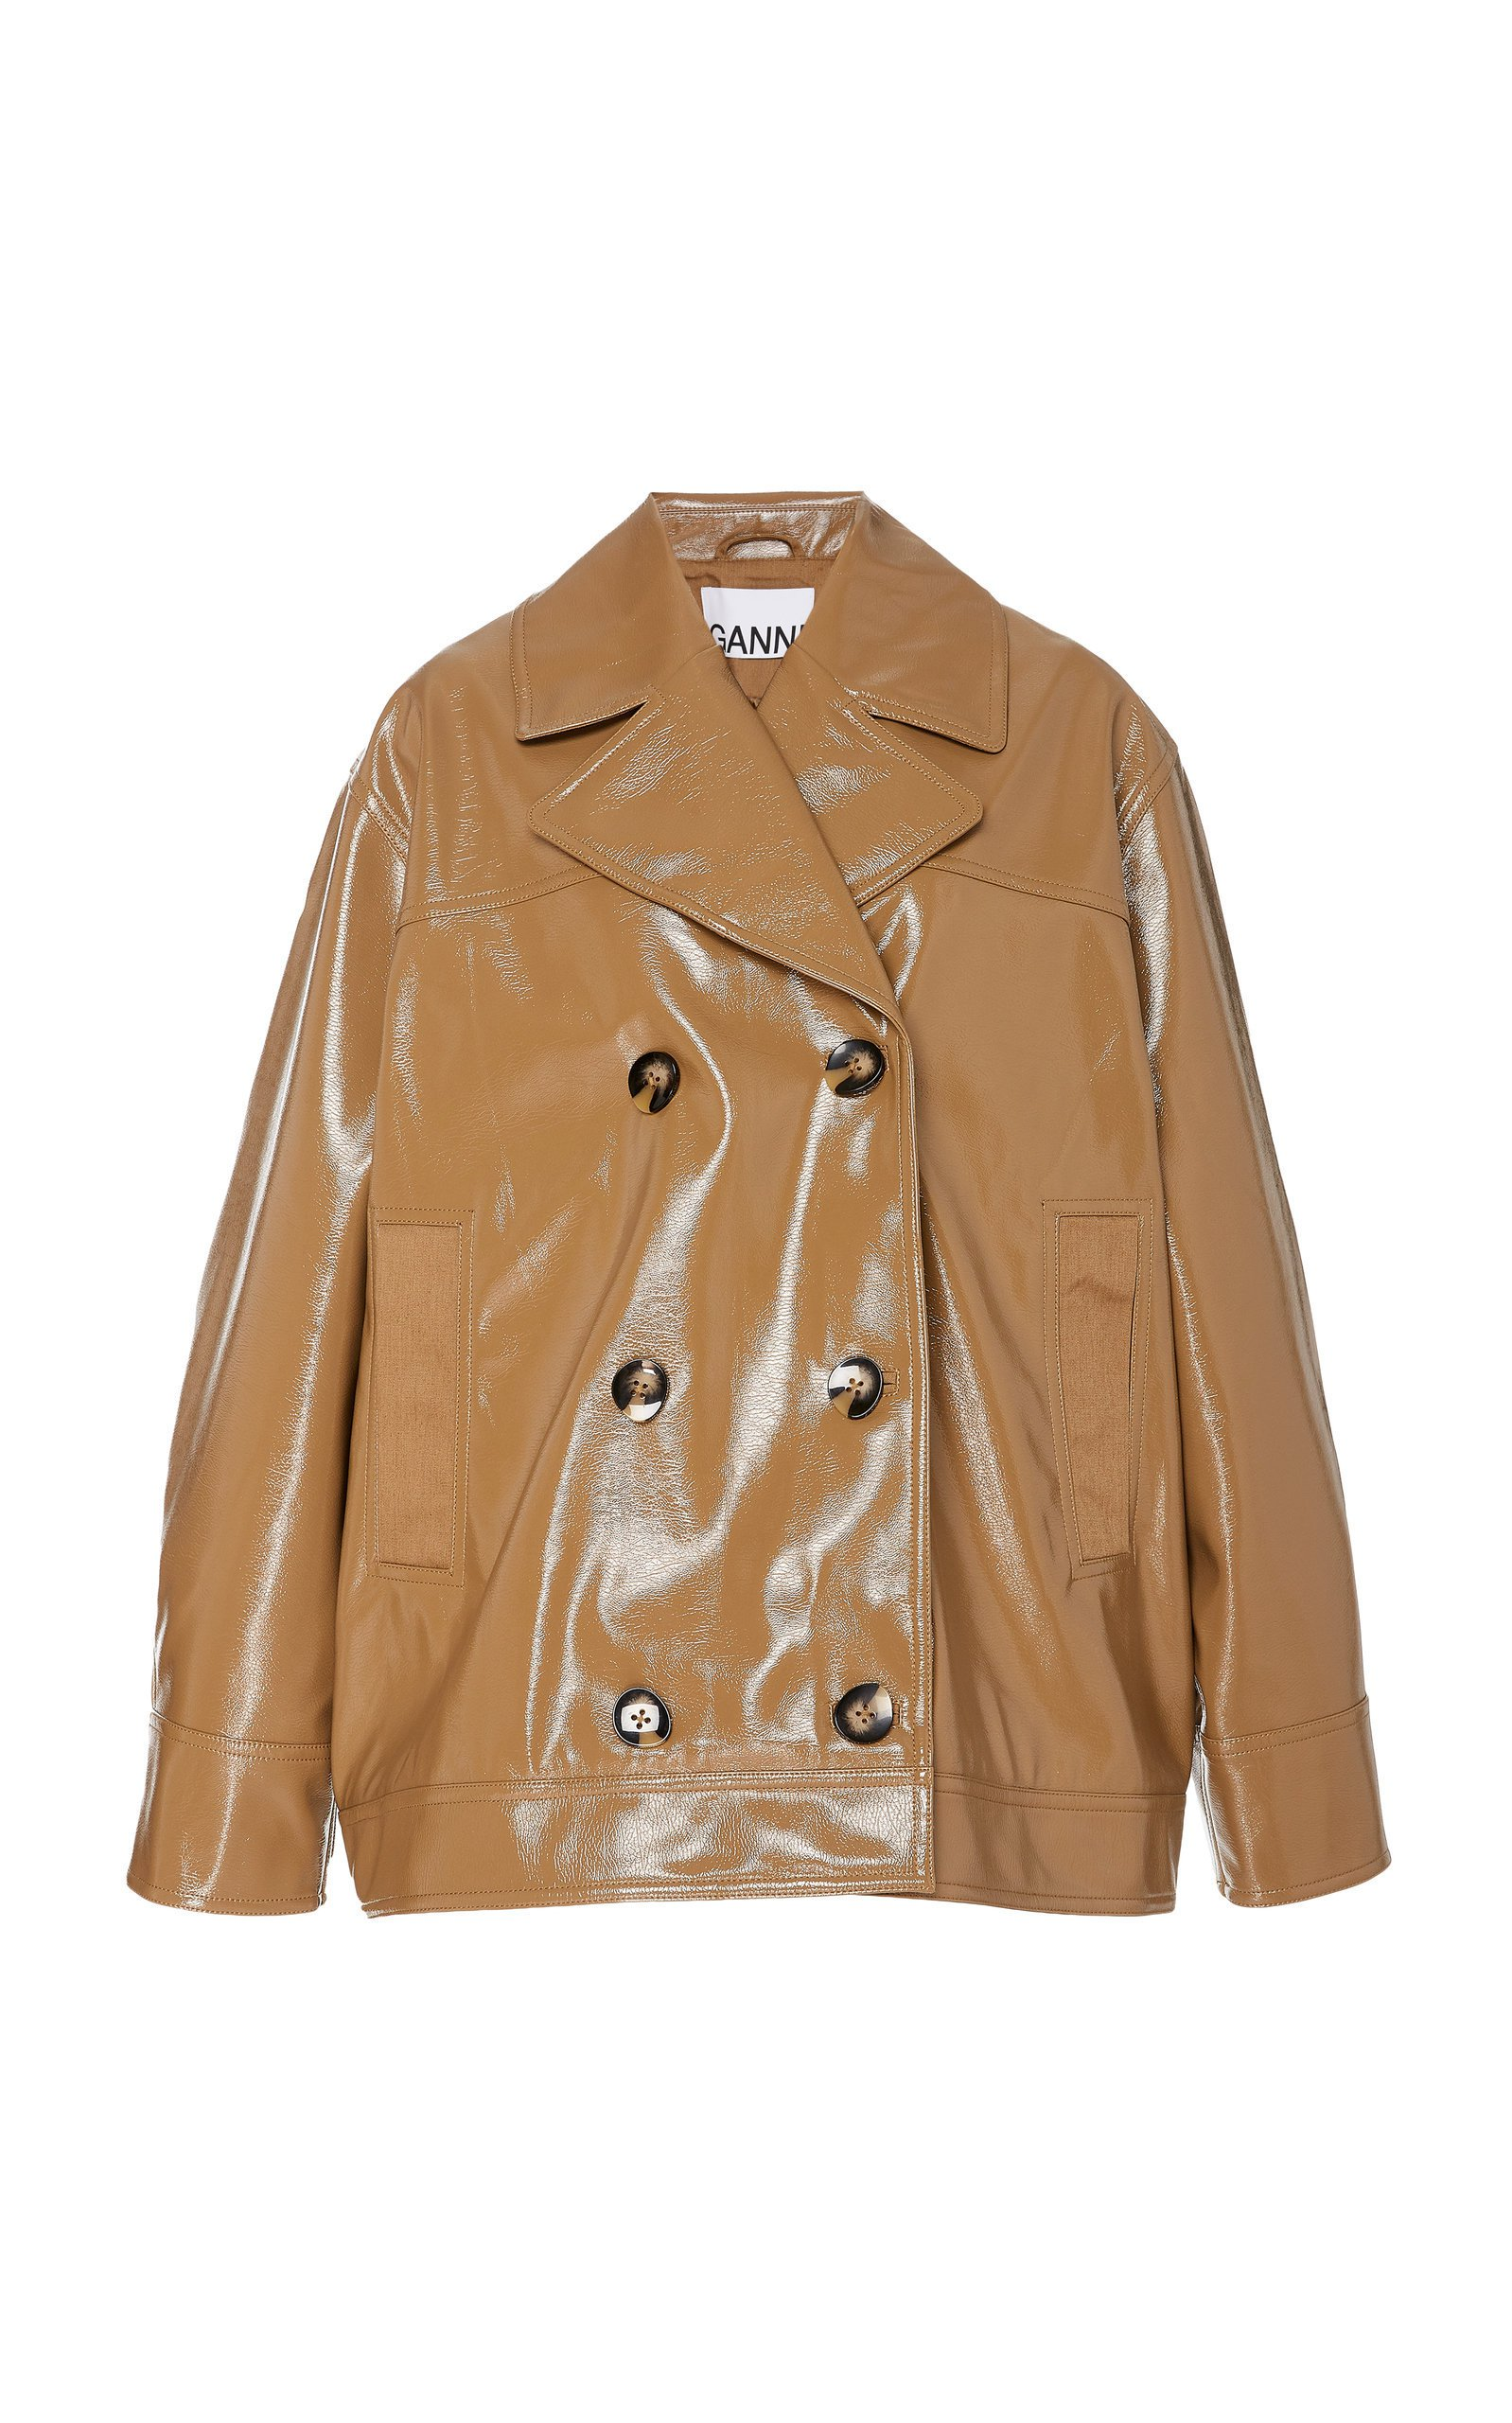 Ganni Double-Breasted Patent Leather Jacket